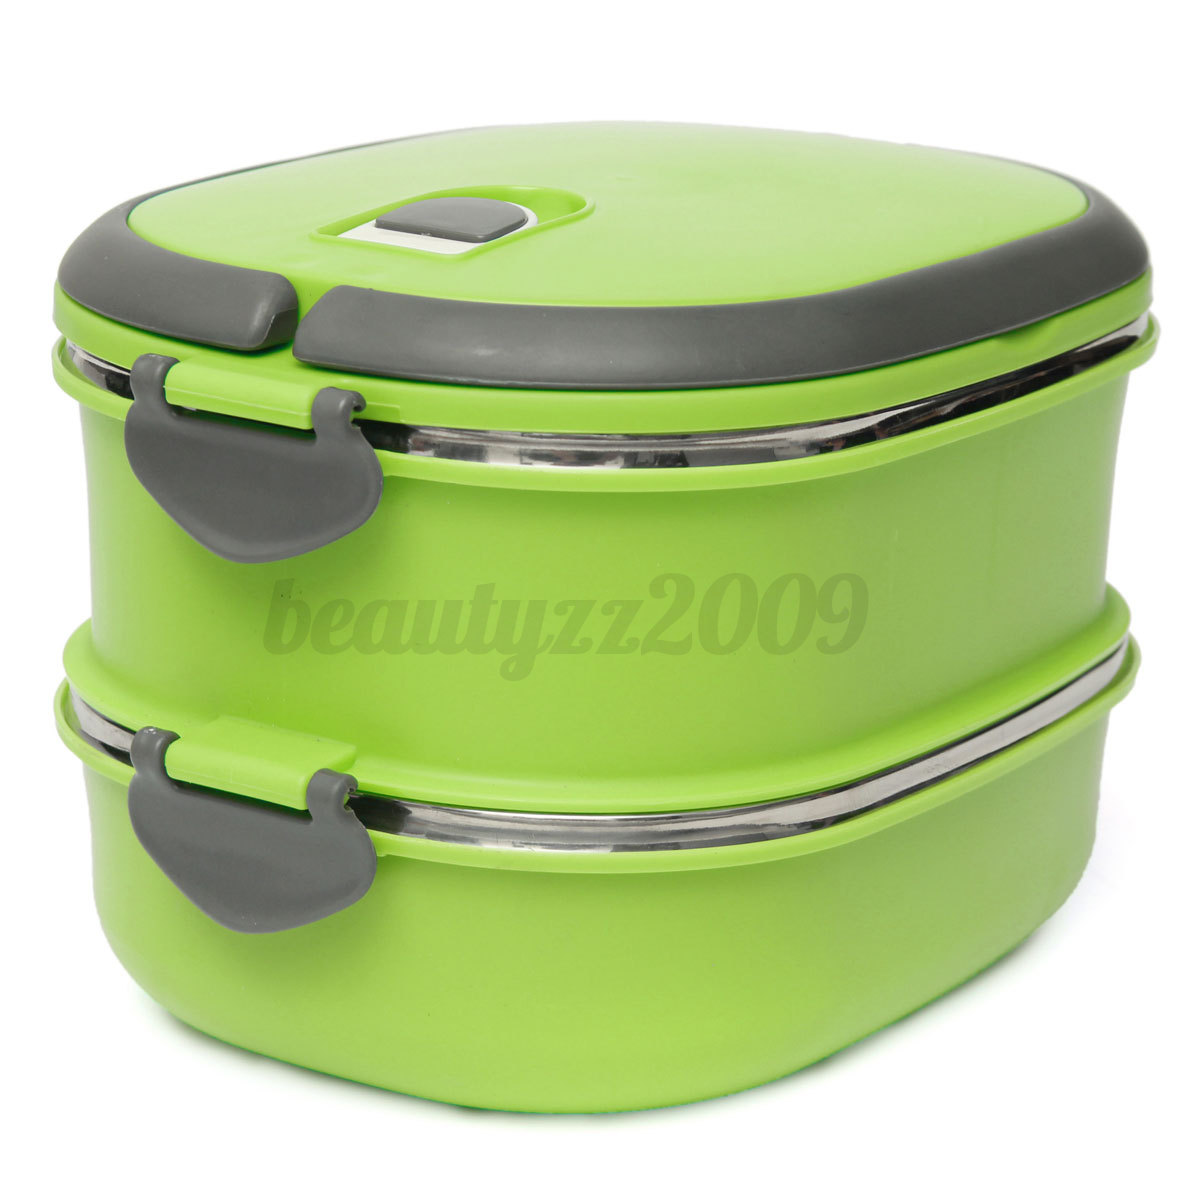 1 2 3 layer portable stainless steel lunch box bento food storage container ebay. Black Bedroom Furniture Sets. Home Design Ideas